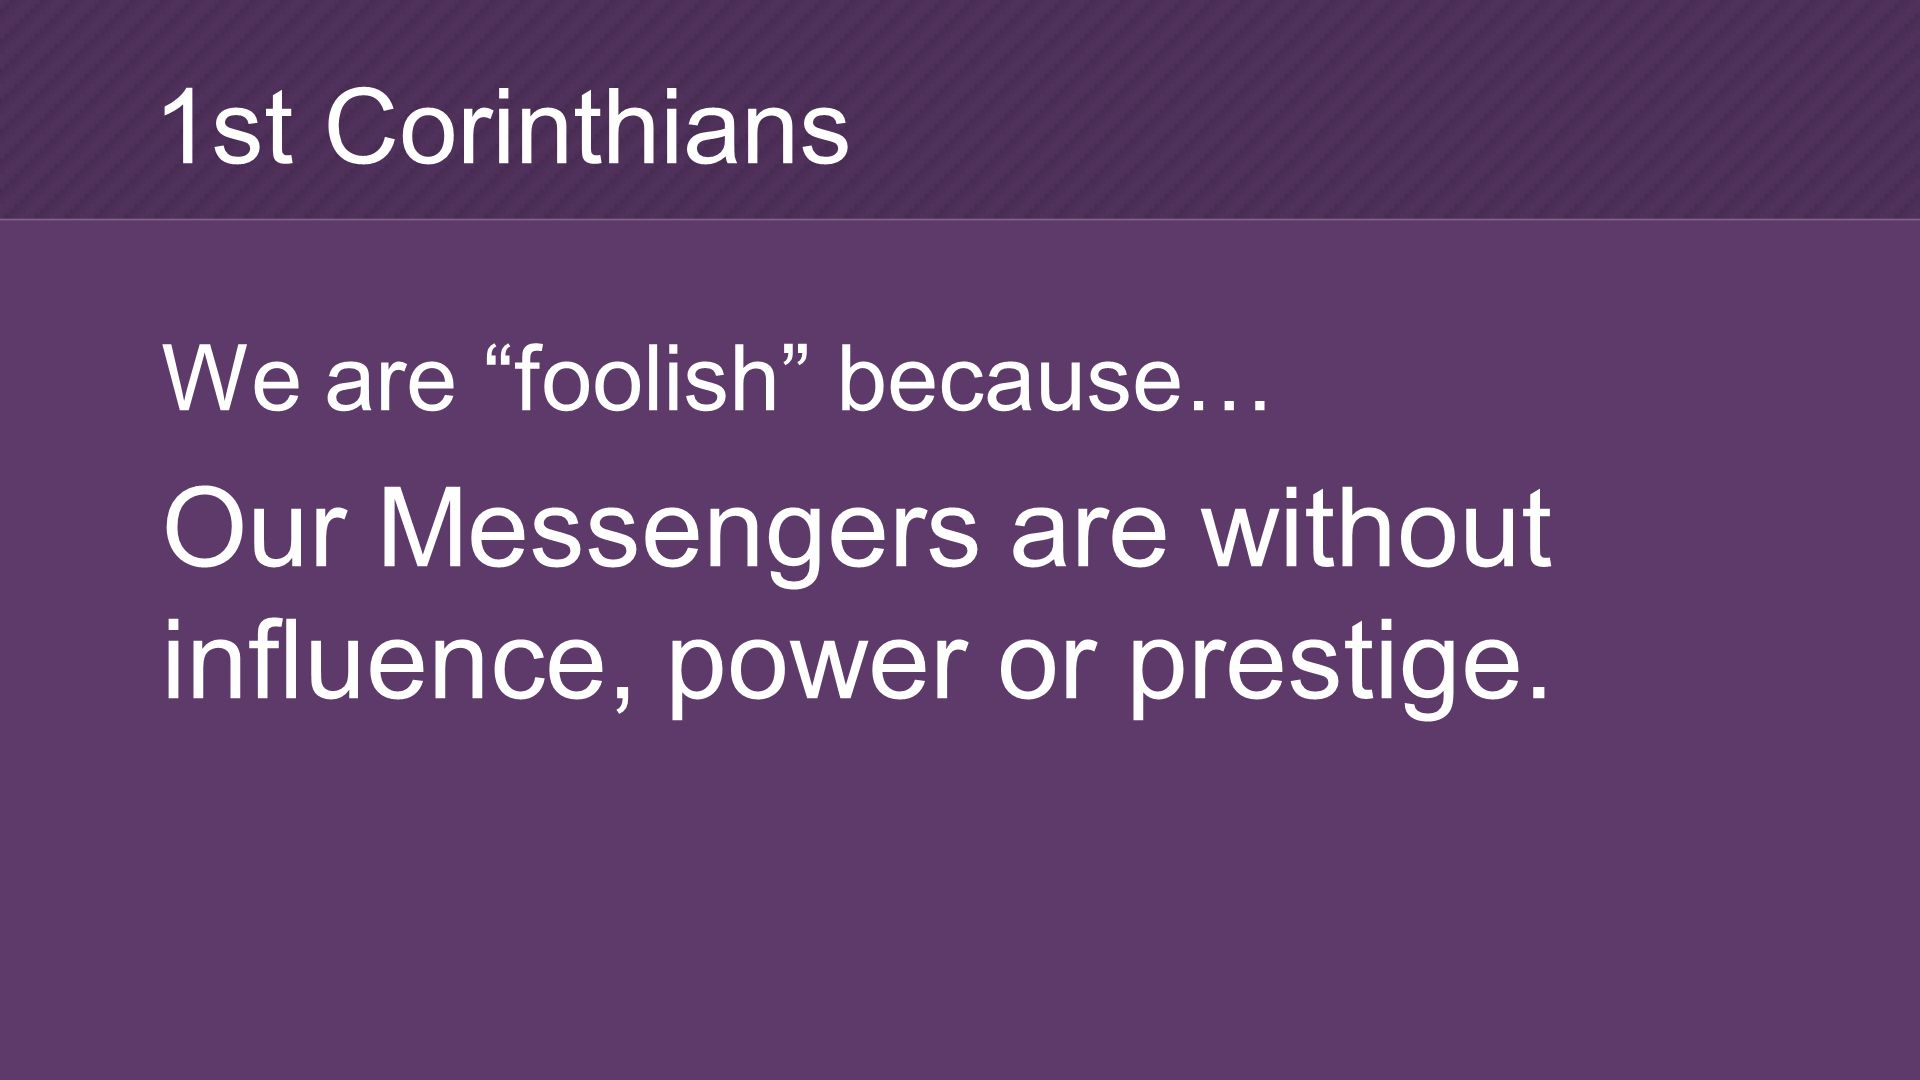 We are foolish because… Our Messengers are without influence, power or prestige. 1st Corinthians